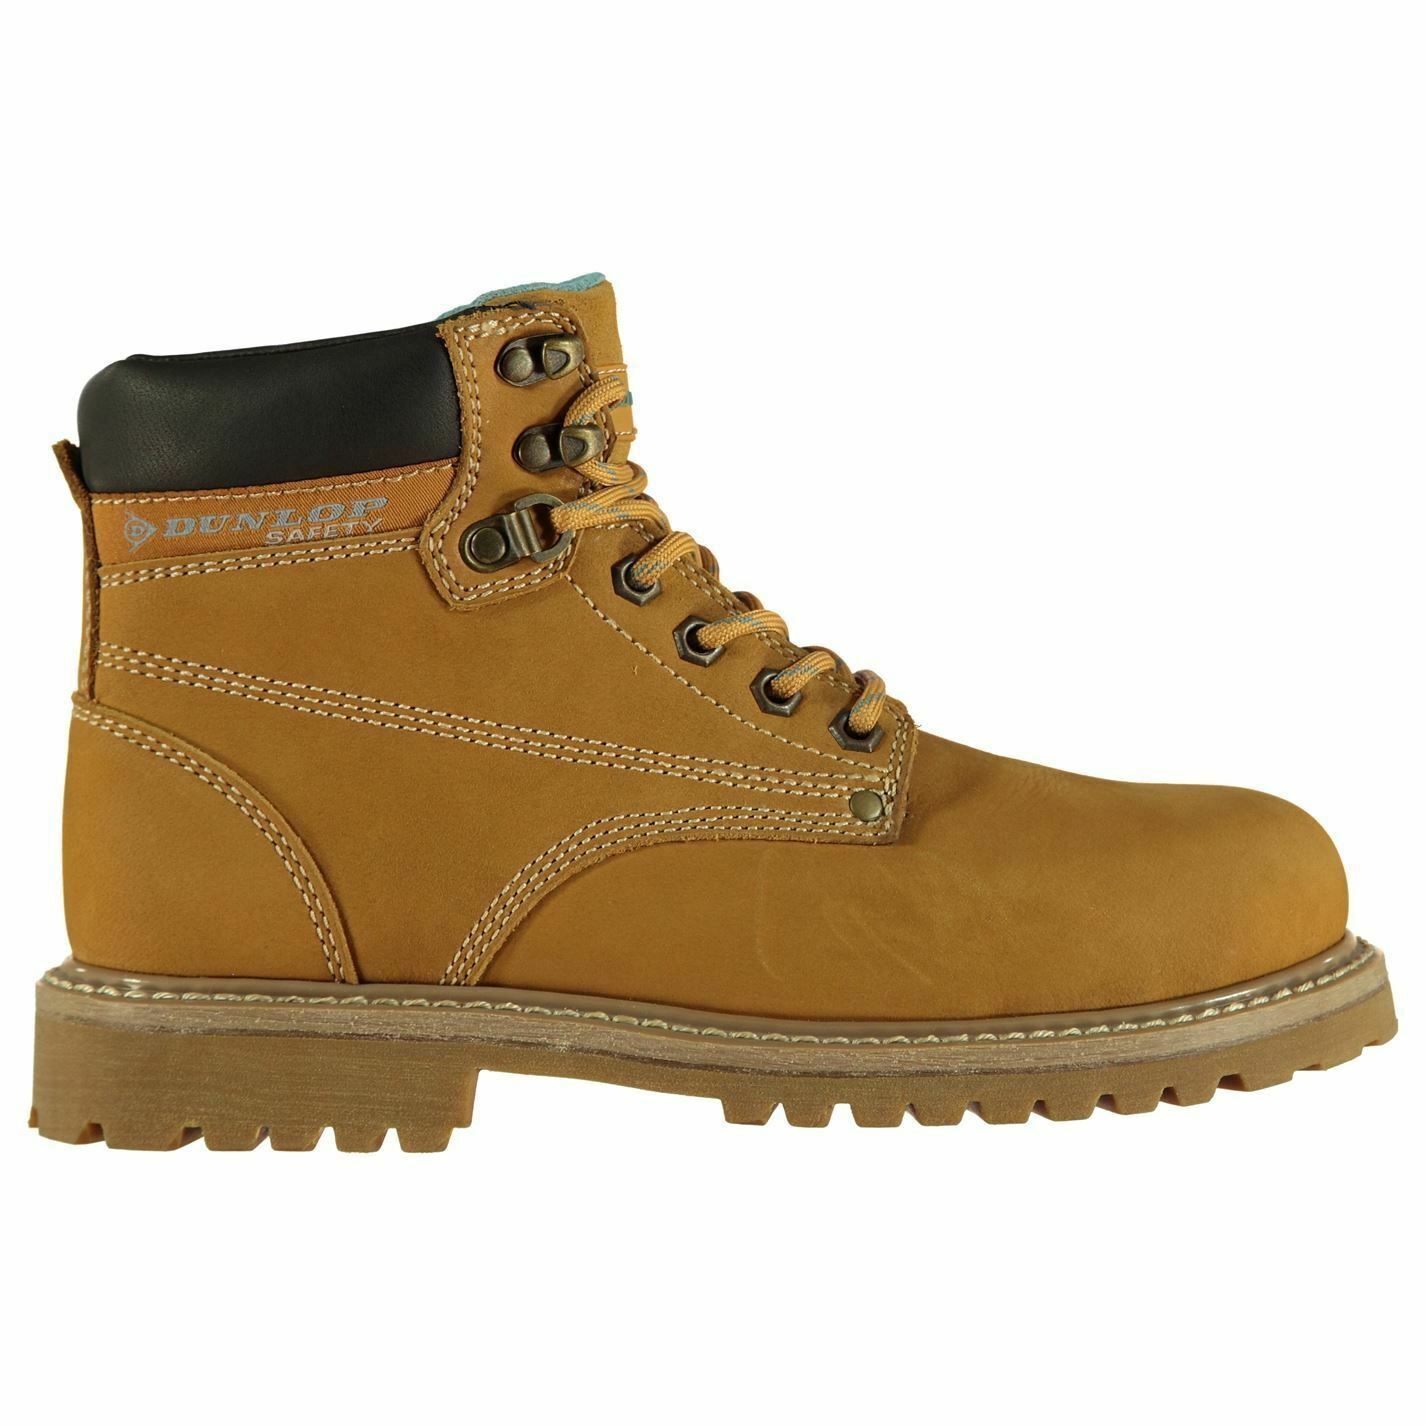 Dunlop Womens Nevada Safety Boots Lace Up Steel Toe Cap